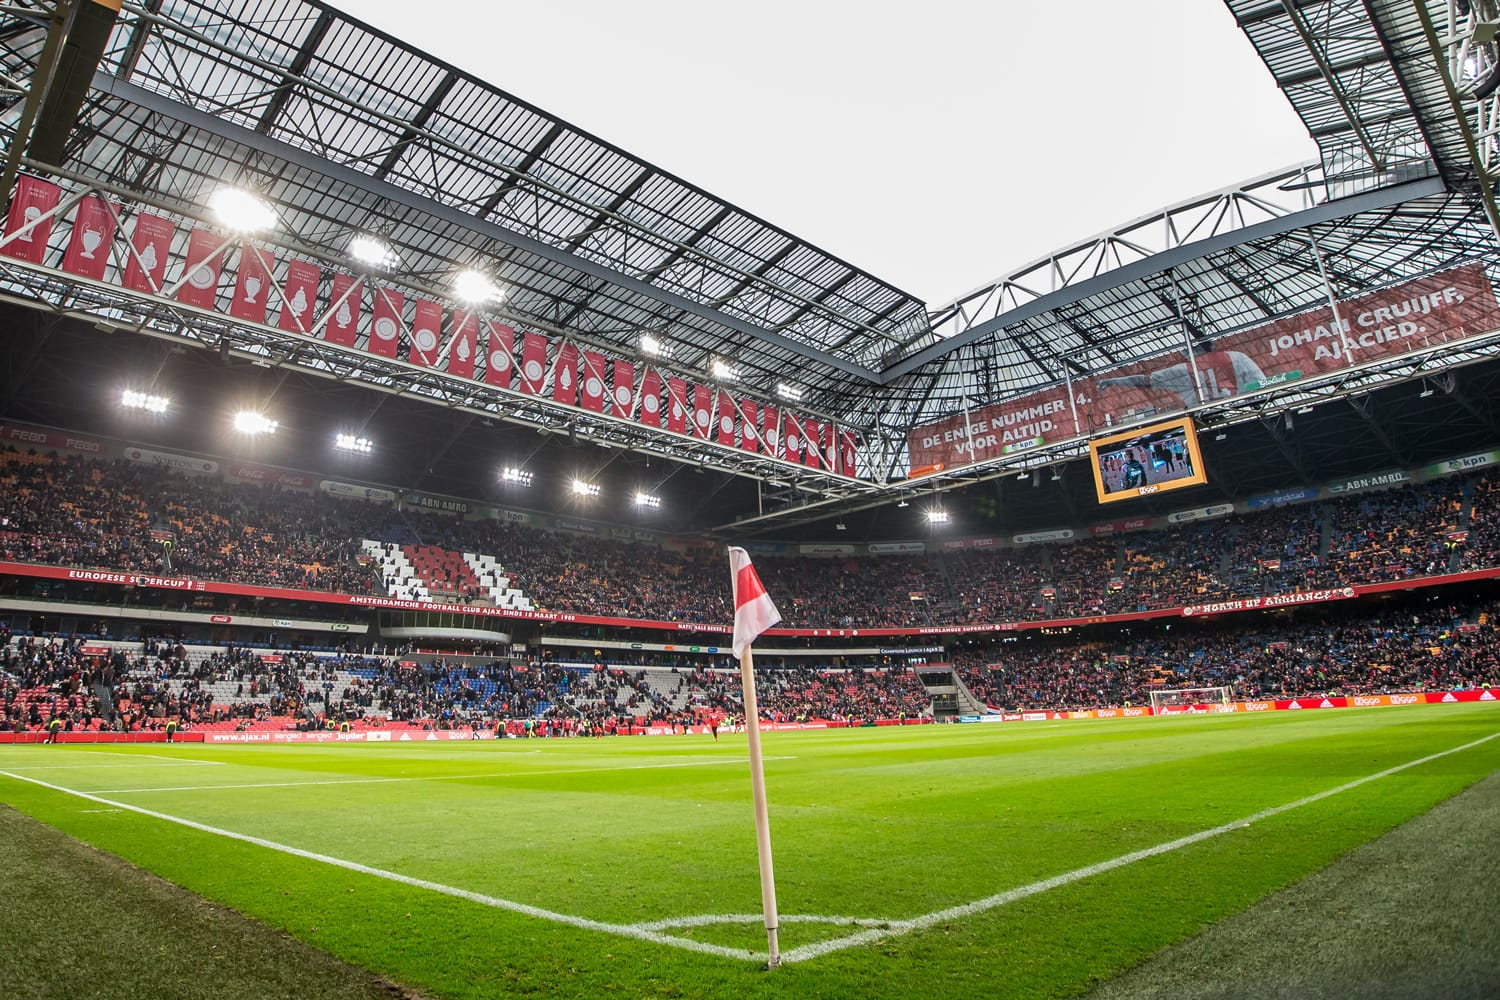 Ajax trainer coach Frank de Boer the ArenA during Dutch Eredivisie match from Ajax , Stadium overview panorama, Amsterdam ArenA